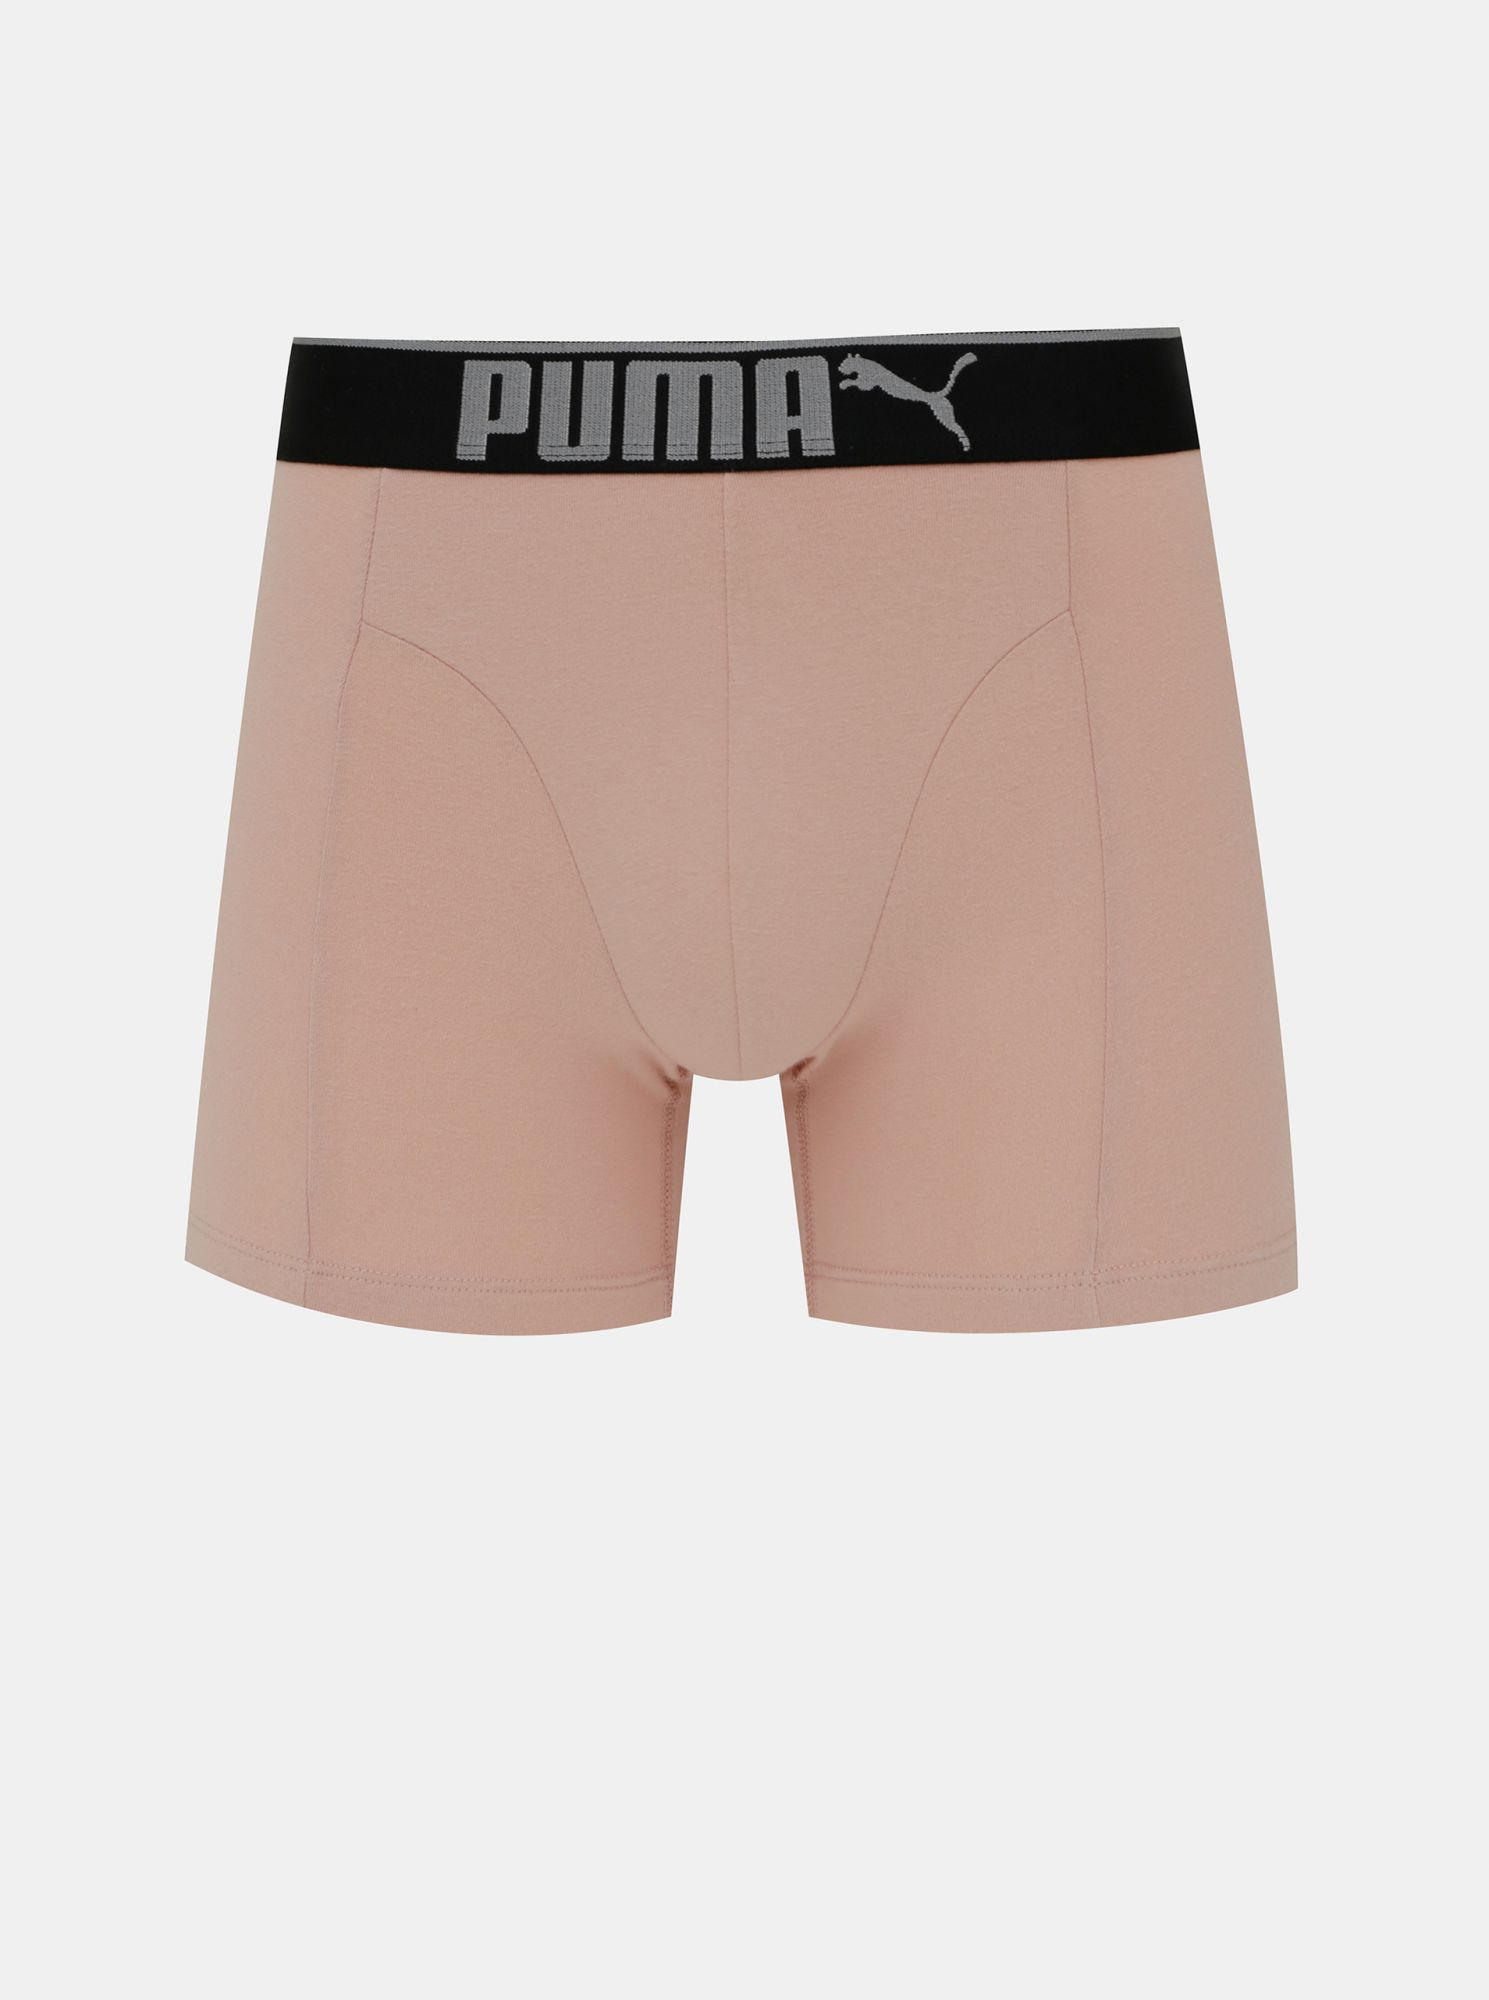 Set of three boxers in black and gray Puma color